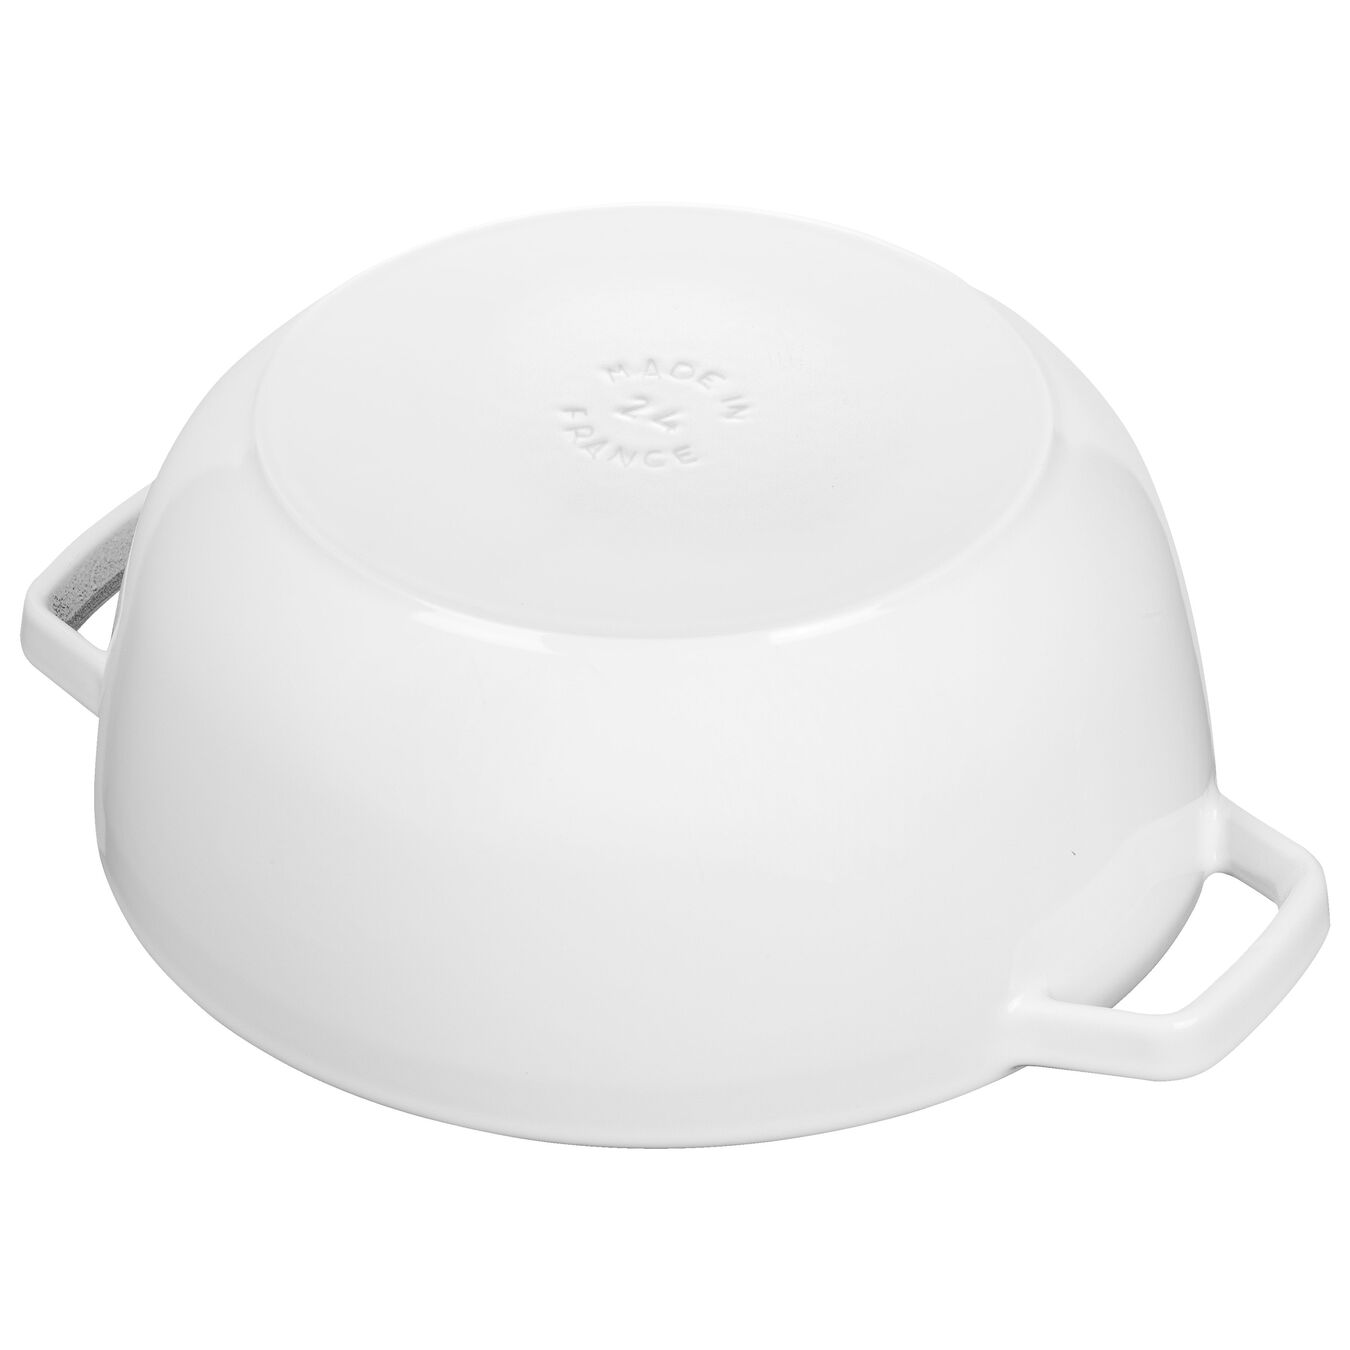 3.75-qt round French oven, White,,large 4